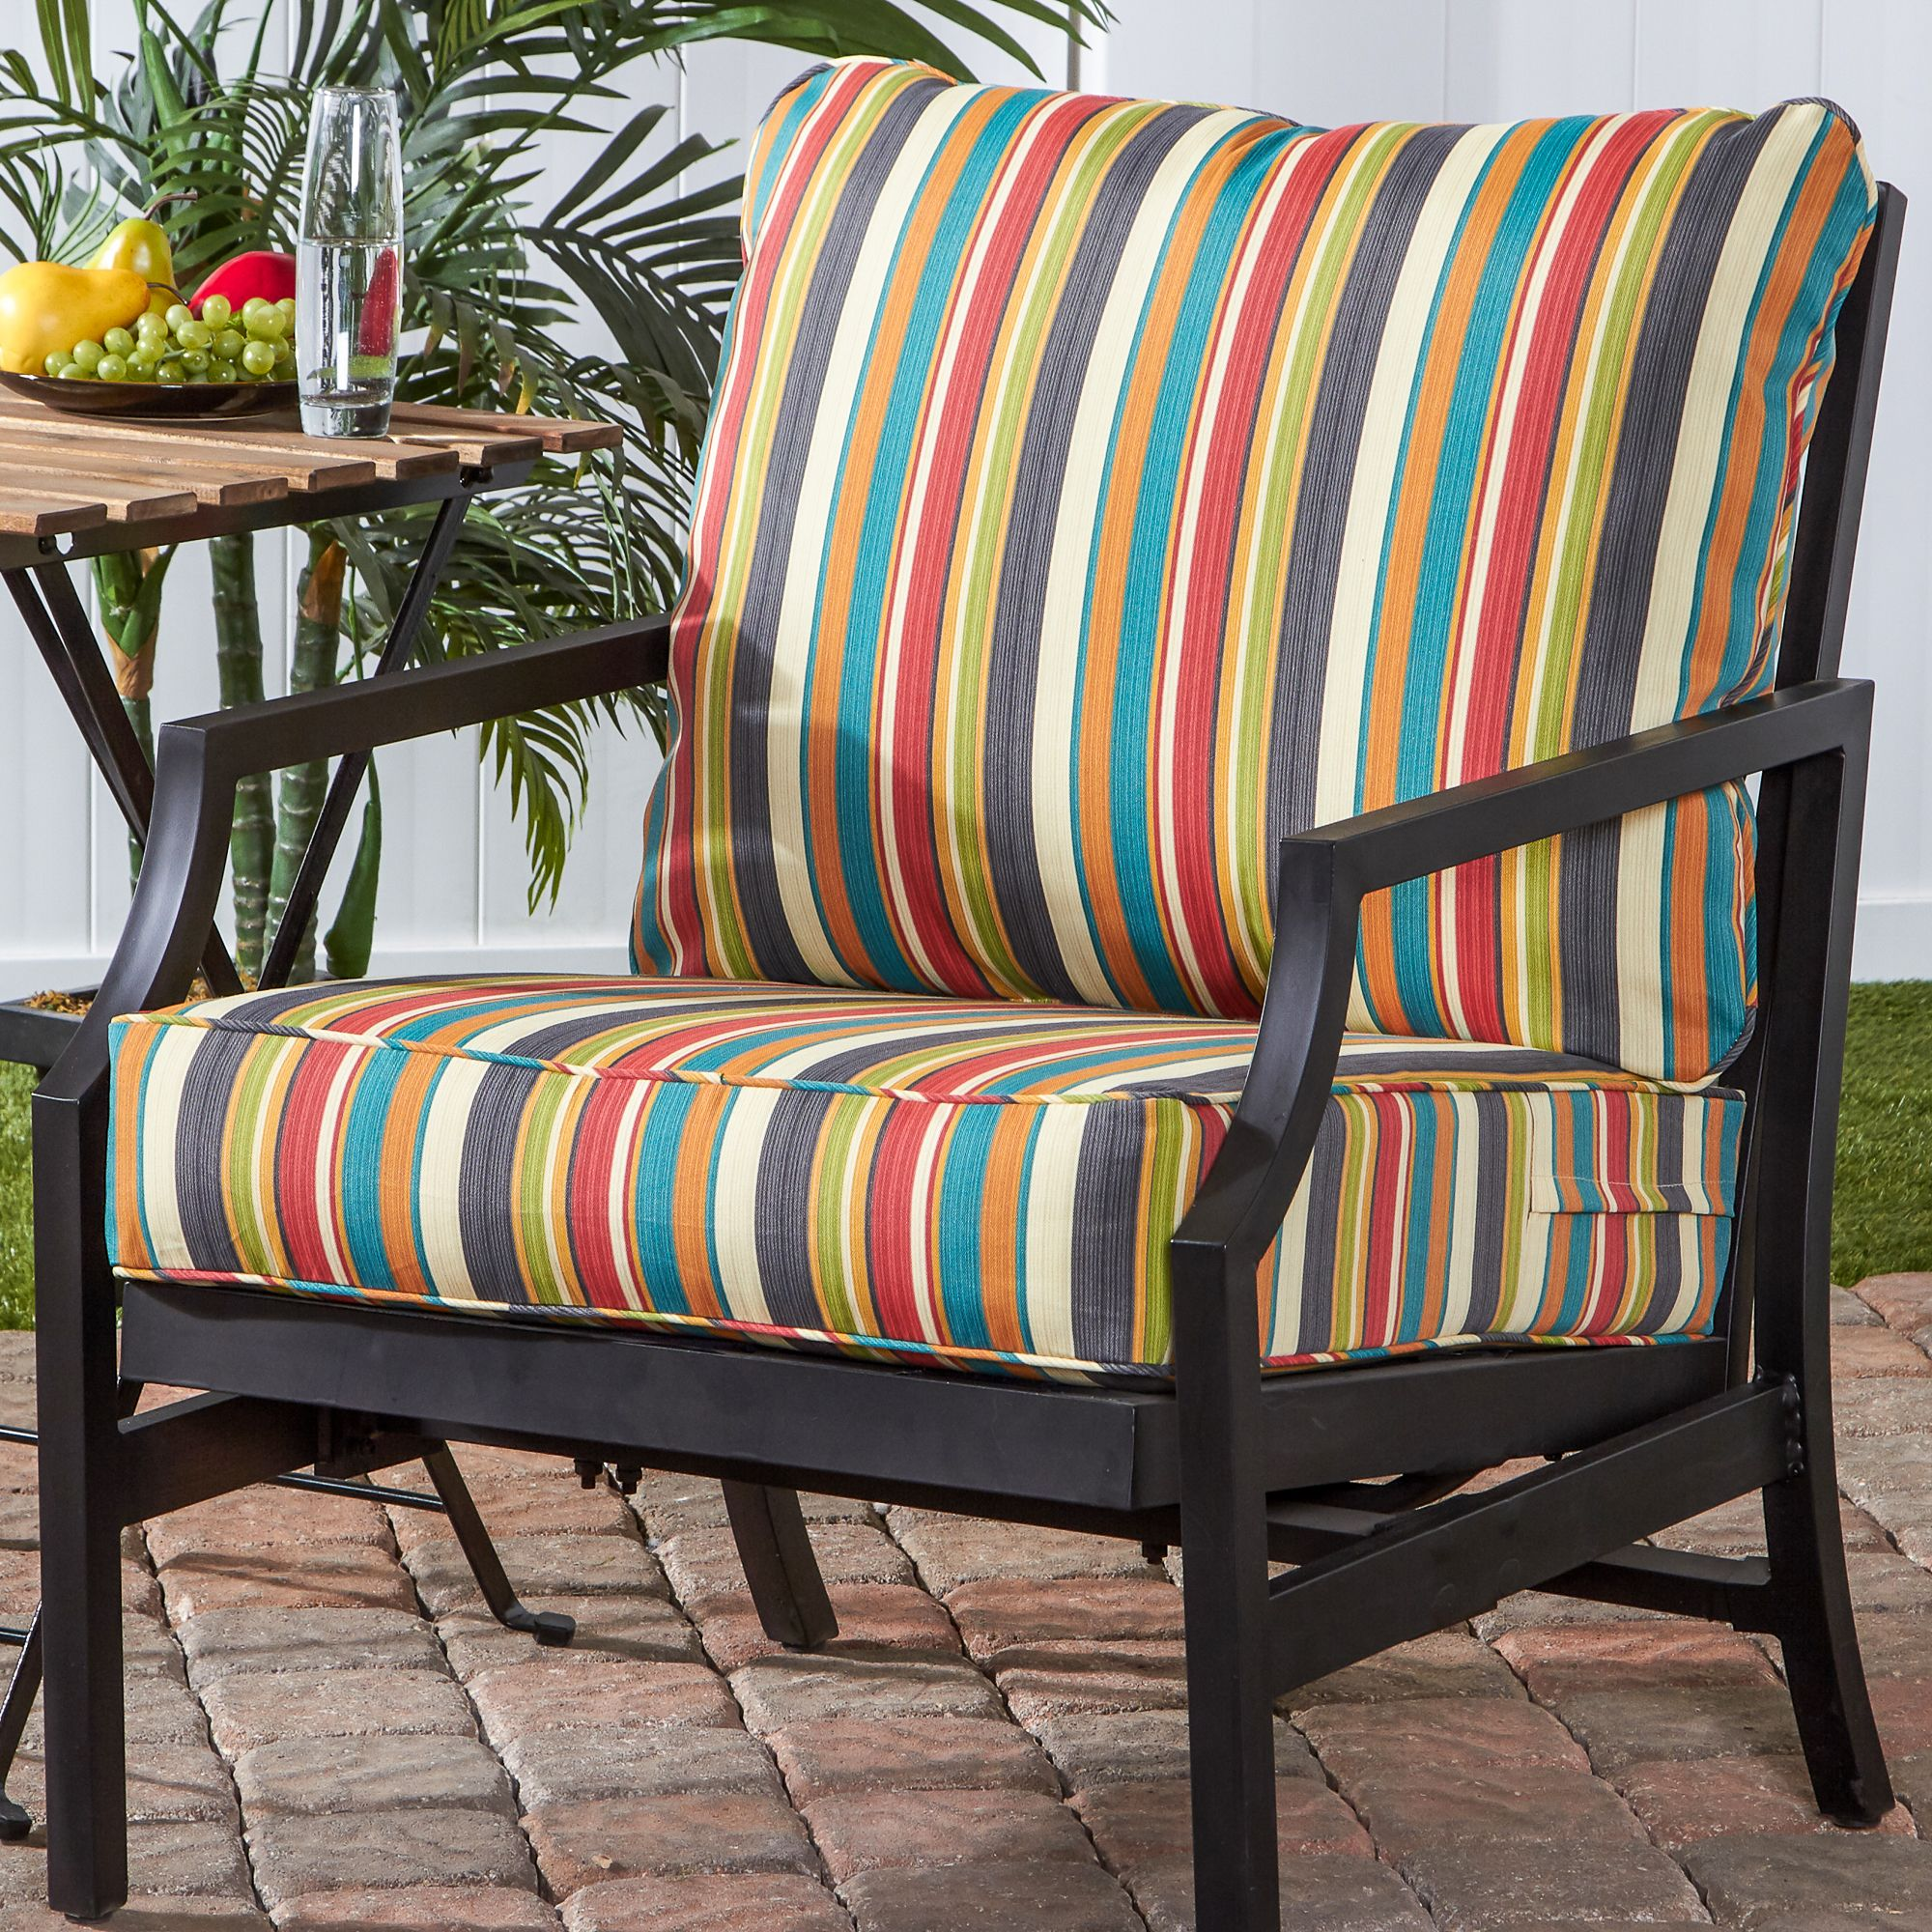 Greendale Home Fashions Sunset Outdoor Deep Seat Cushion Set by Greendale Home Fashions